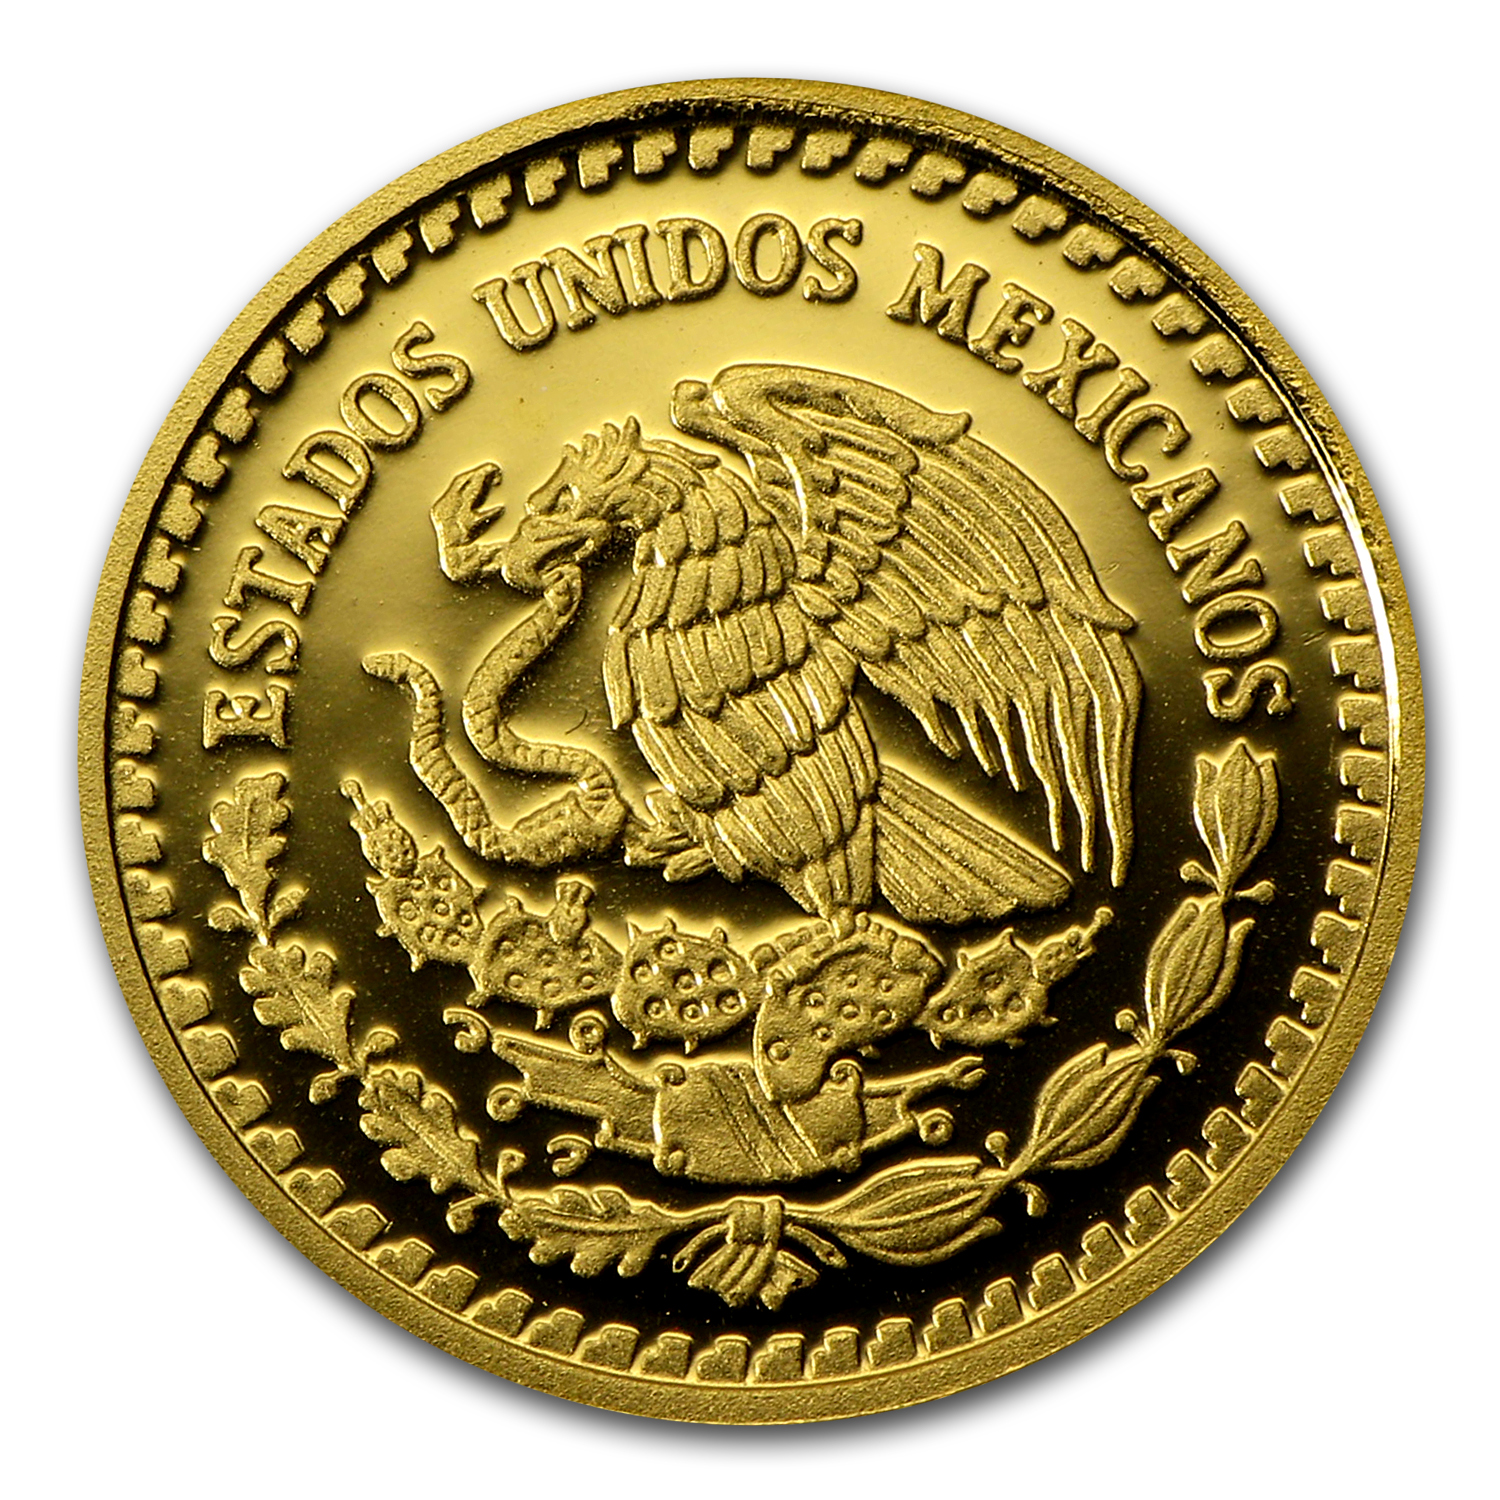 2010 Mexico 1/10 oz Proof Gold Libertad